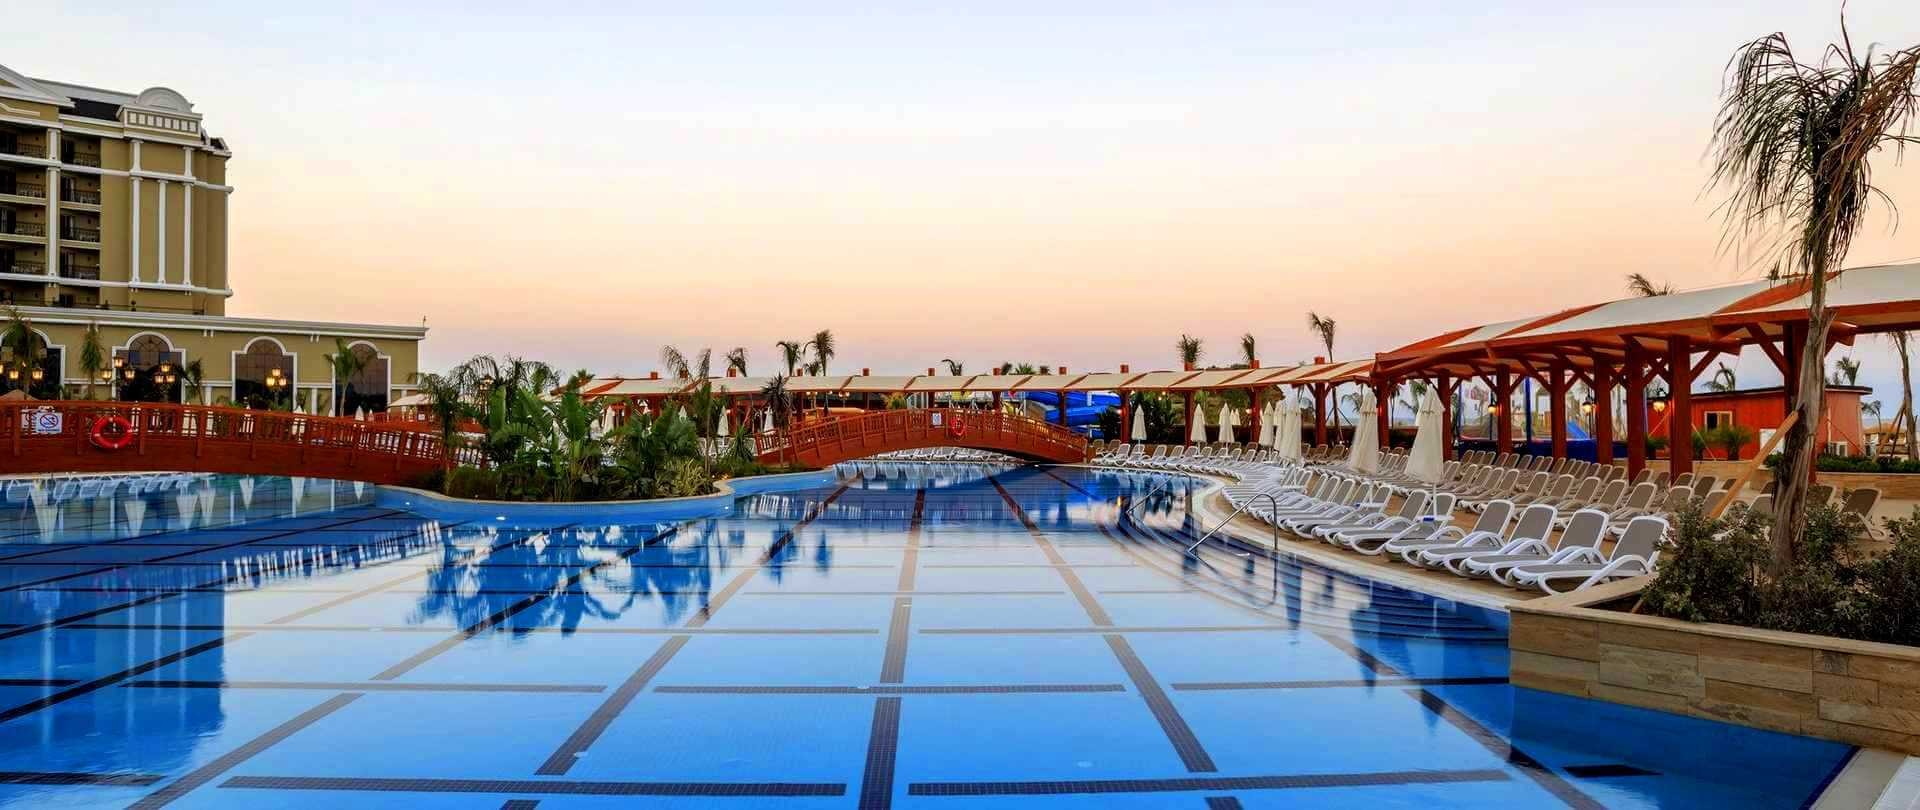 Hotel Sunis Efes Royal Palace - басейн